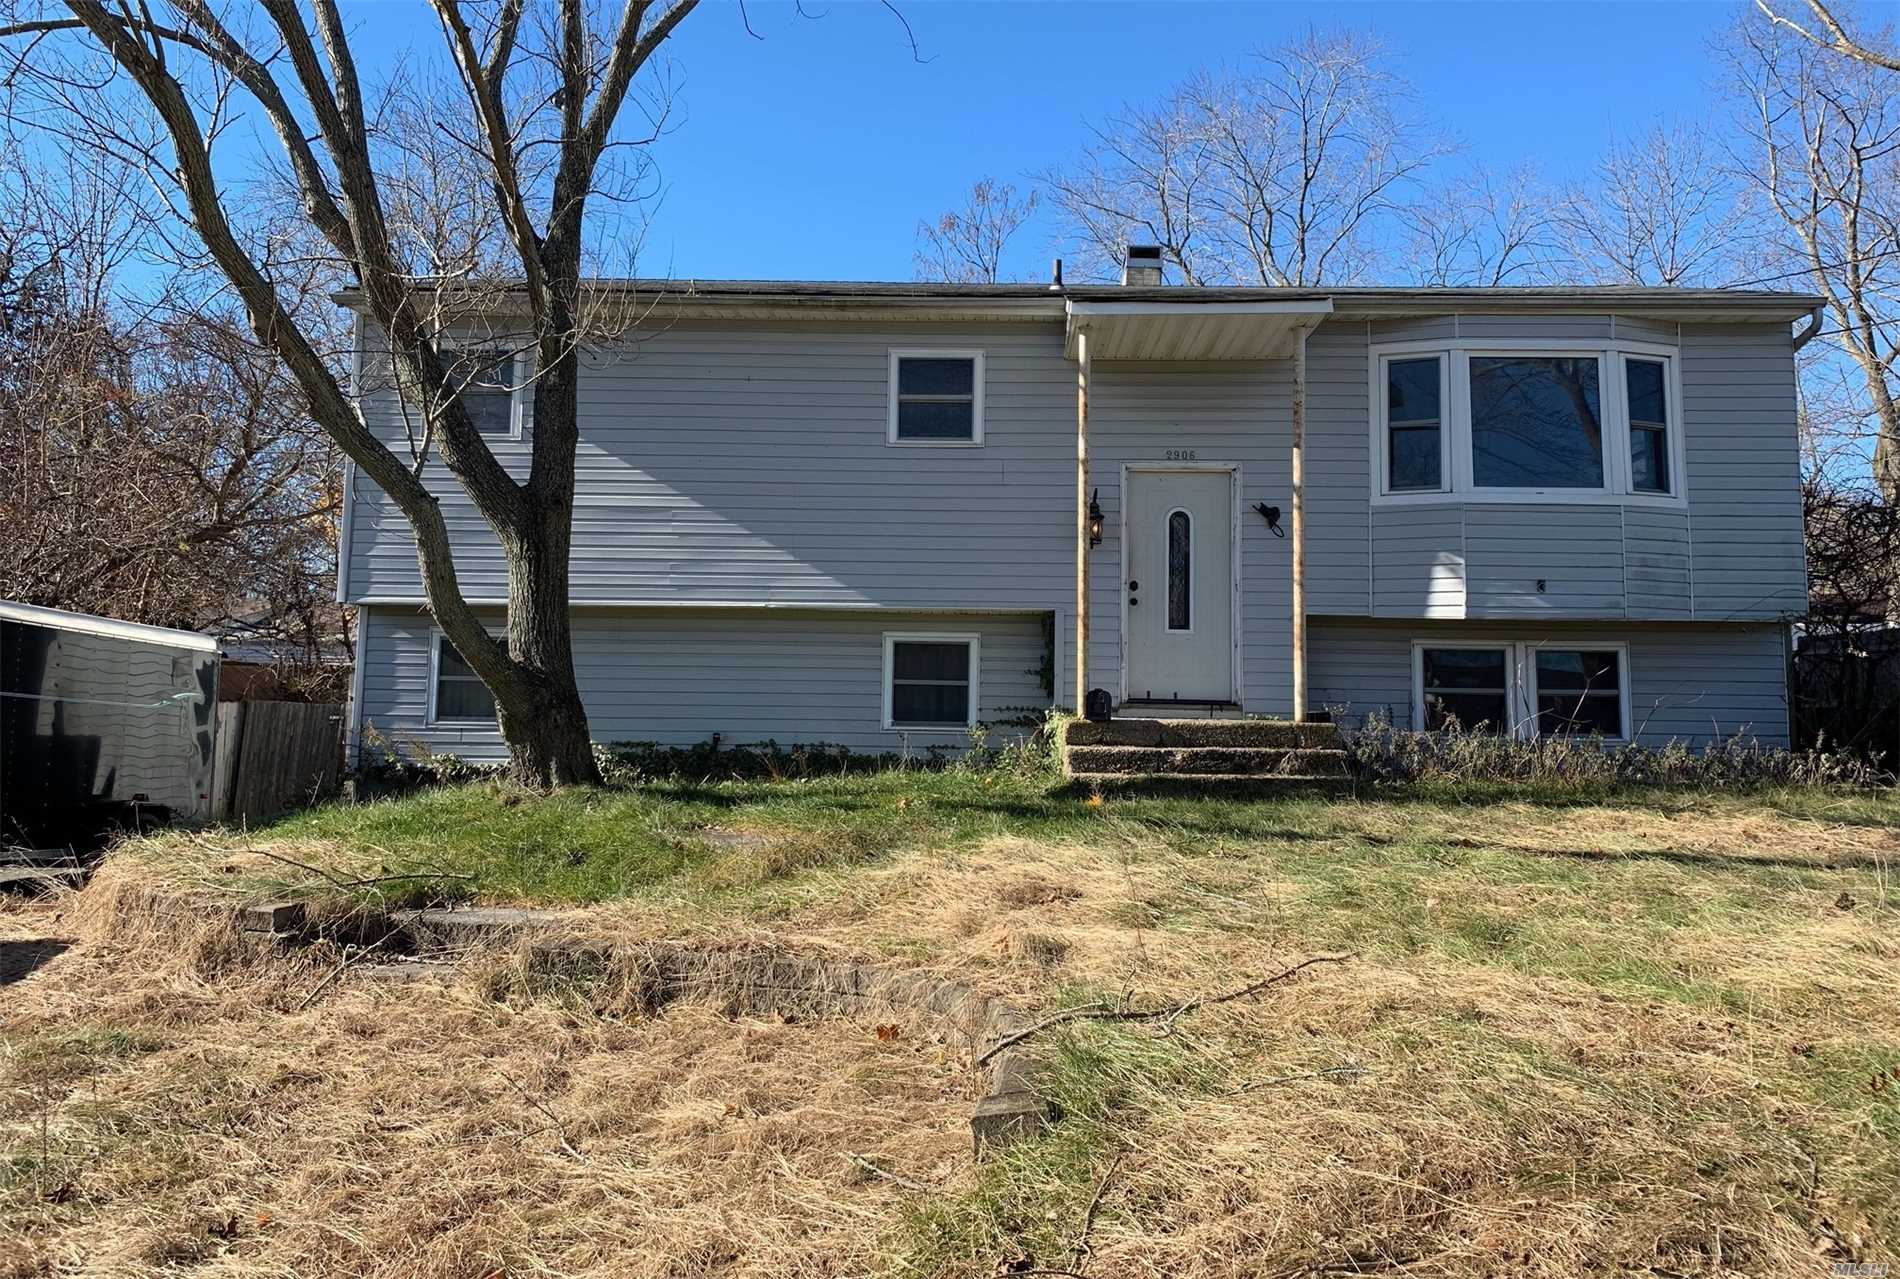 Fixer Upper In Medford! Comfortable Home Needing A Little Tlc To Bring It Back To Life, Possible Acc Apartment With Proper Permits